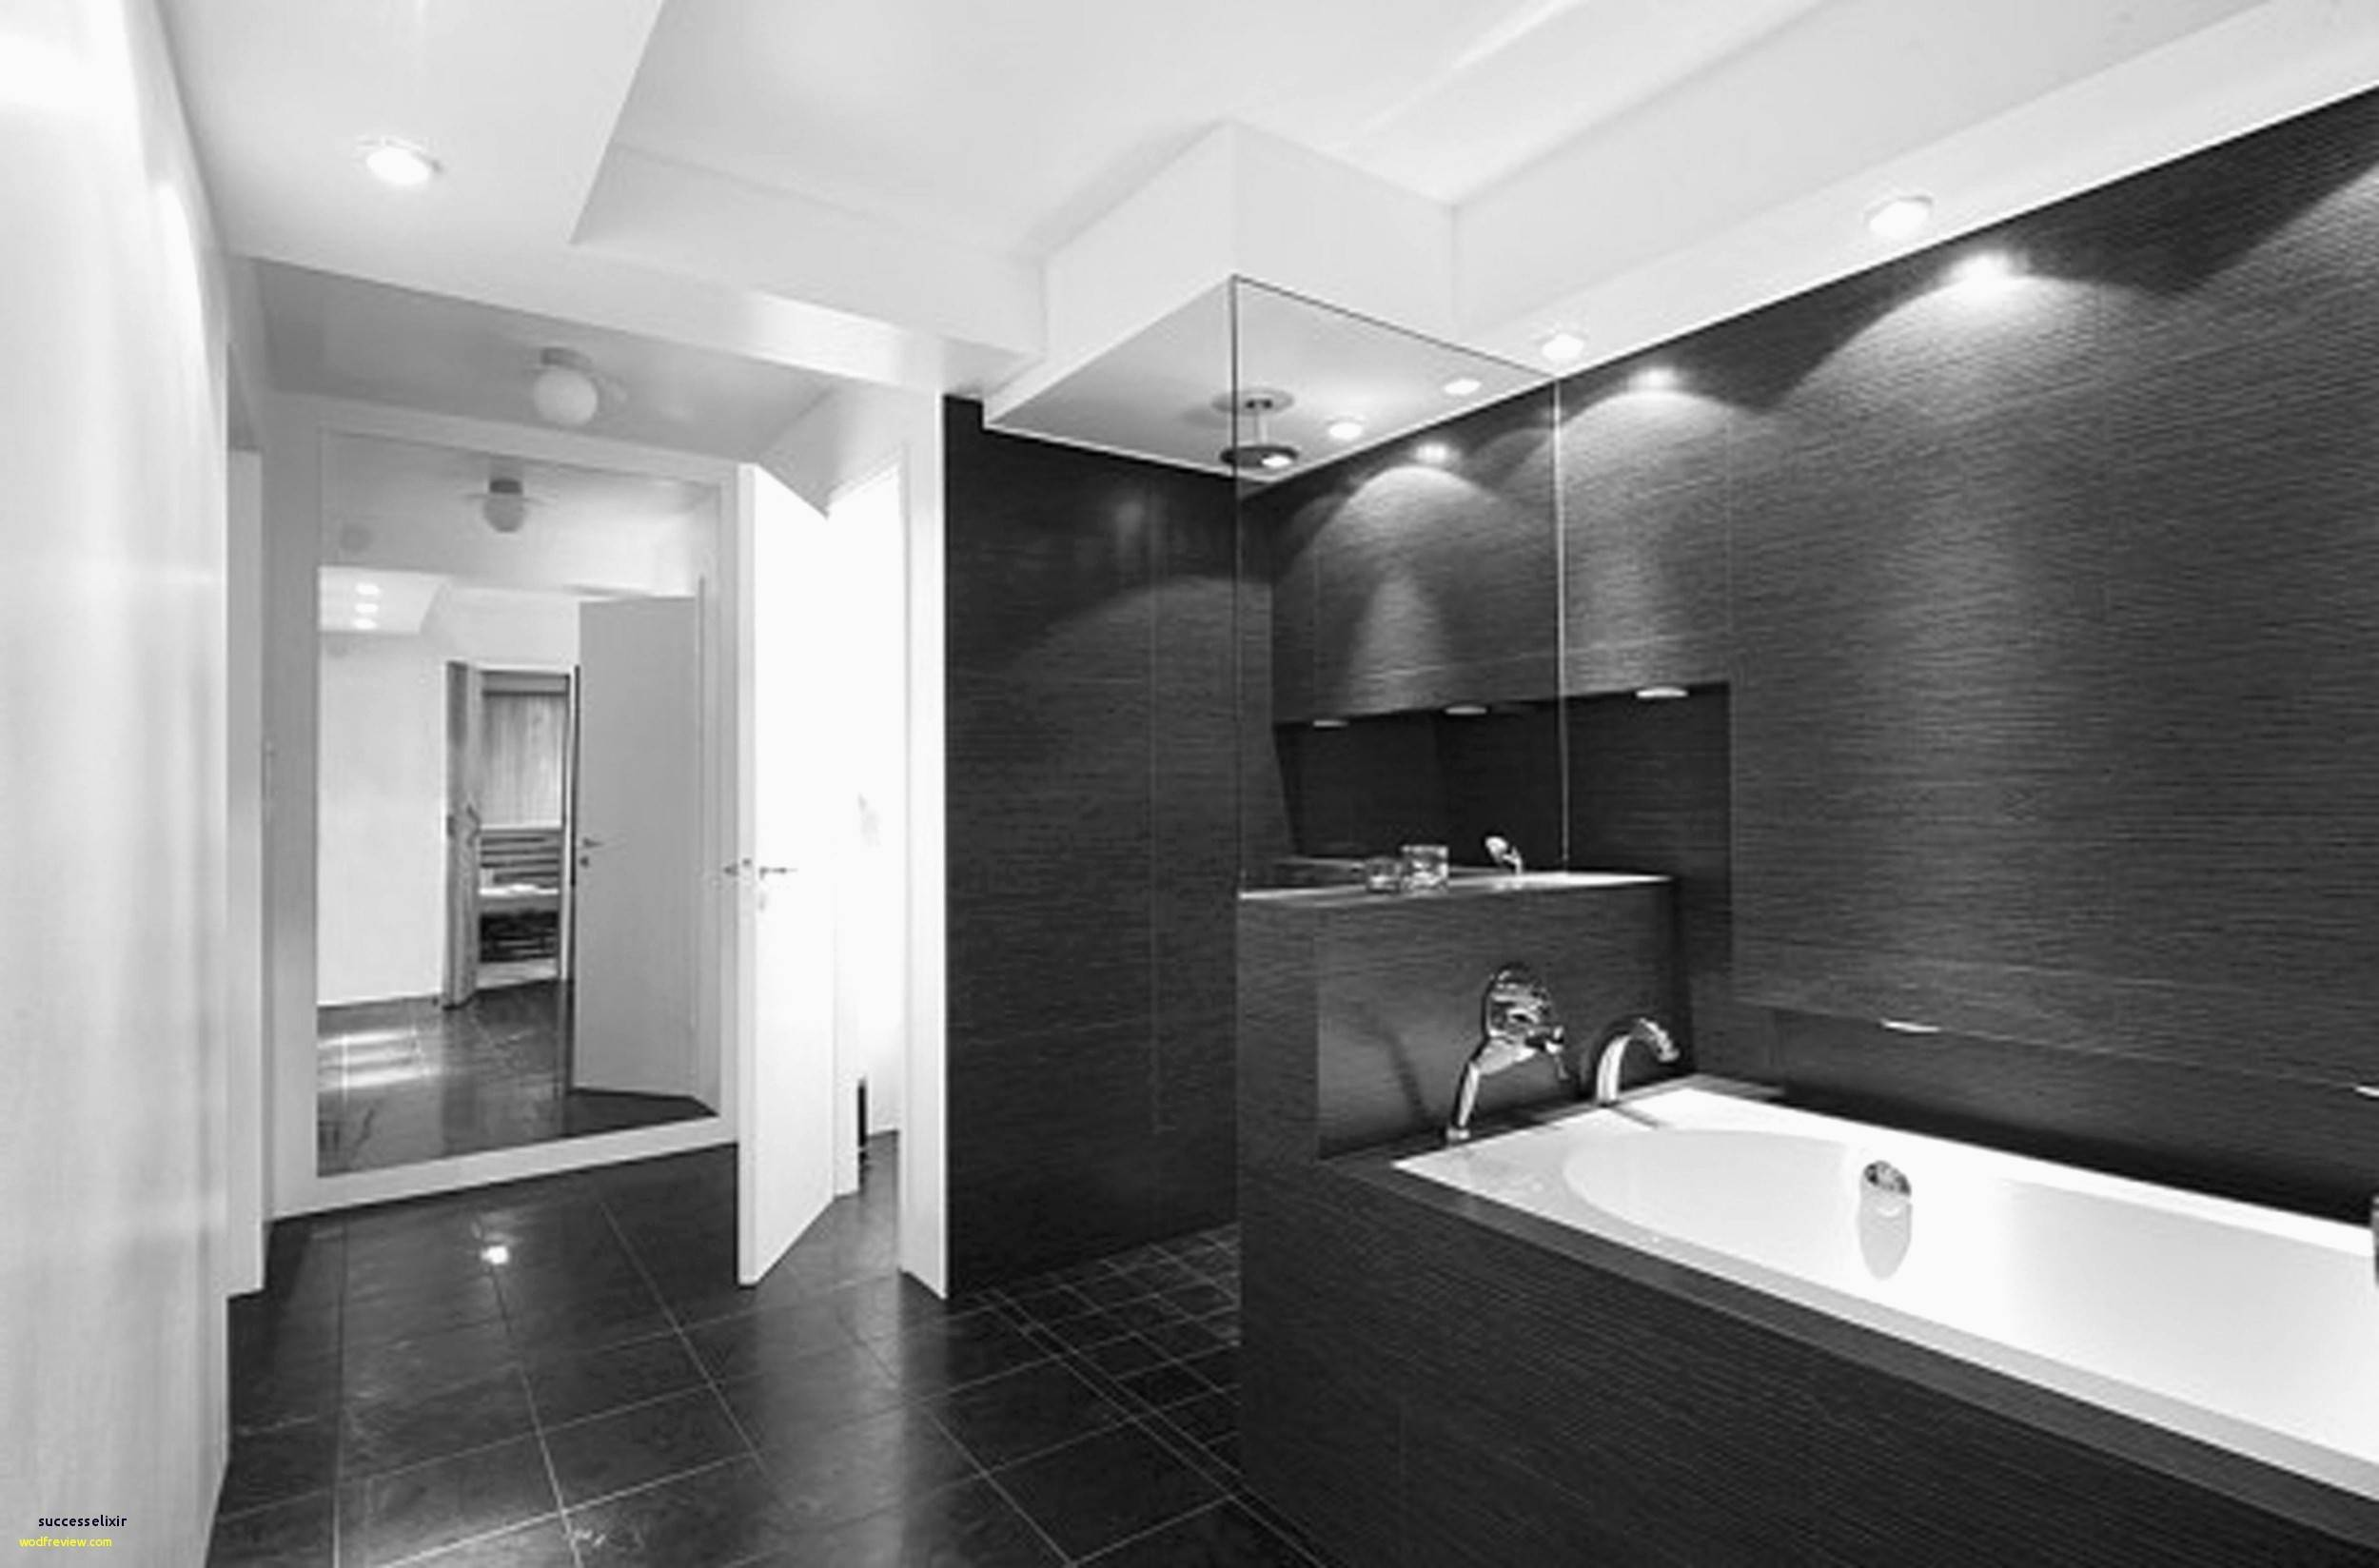 hardwood floors in kitchen pros and cons of fascinating bathroom tile cleaner recipe nice bathroom ideas for modern bathroom tile design beautiful bathroom picture ideas lovely tag toilet id